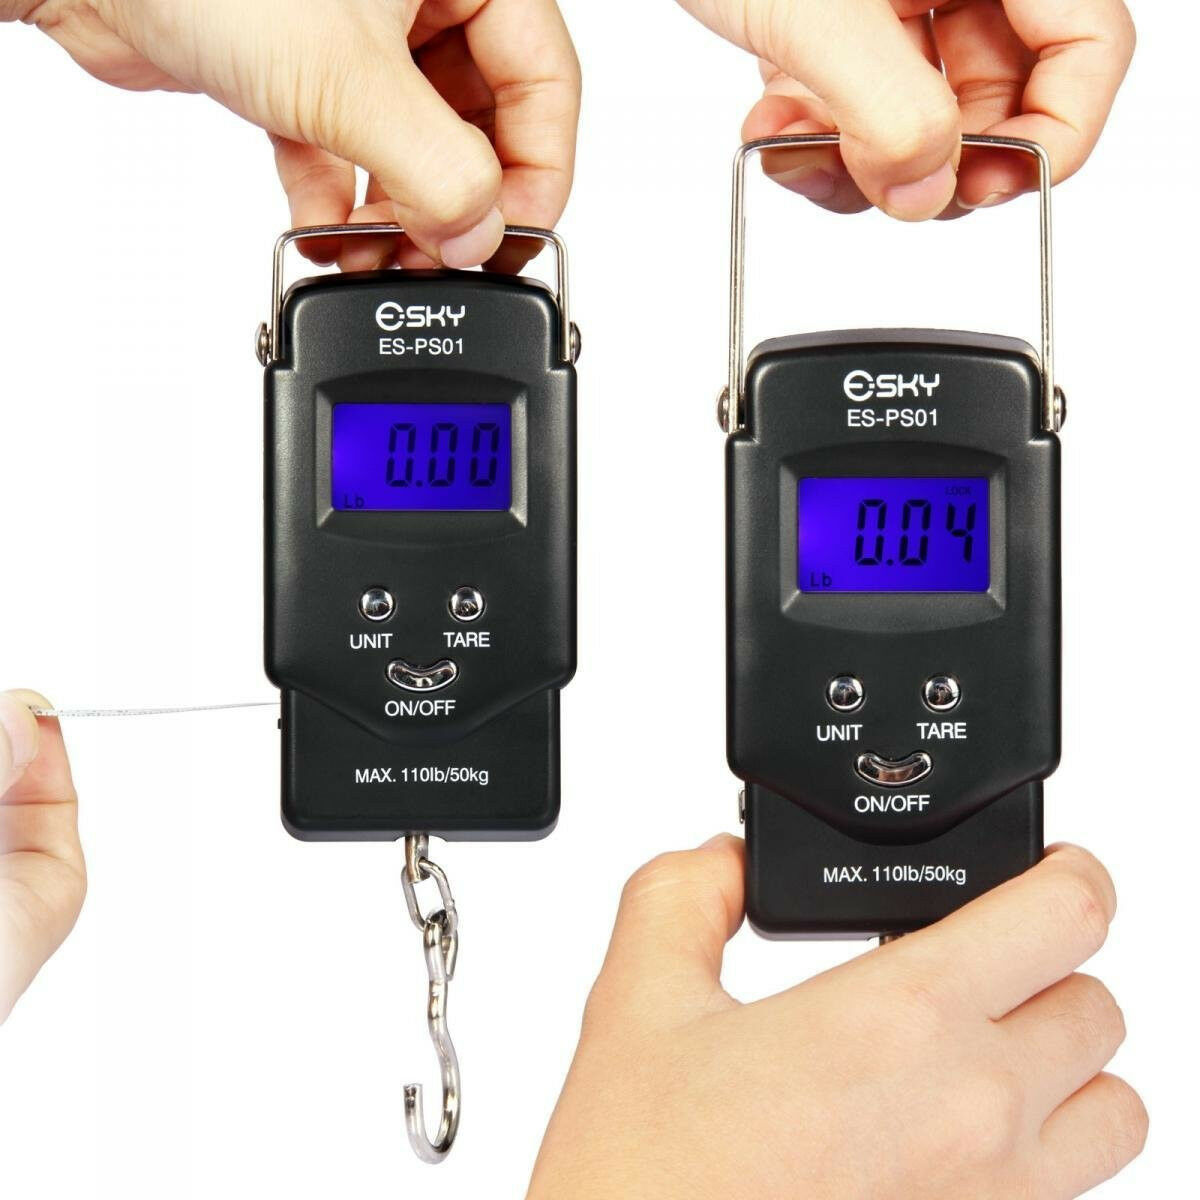 Esky Electronic Hanging Scale ES-PS01 - Luggage Scale with built-in Tape Measure